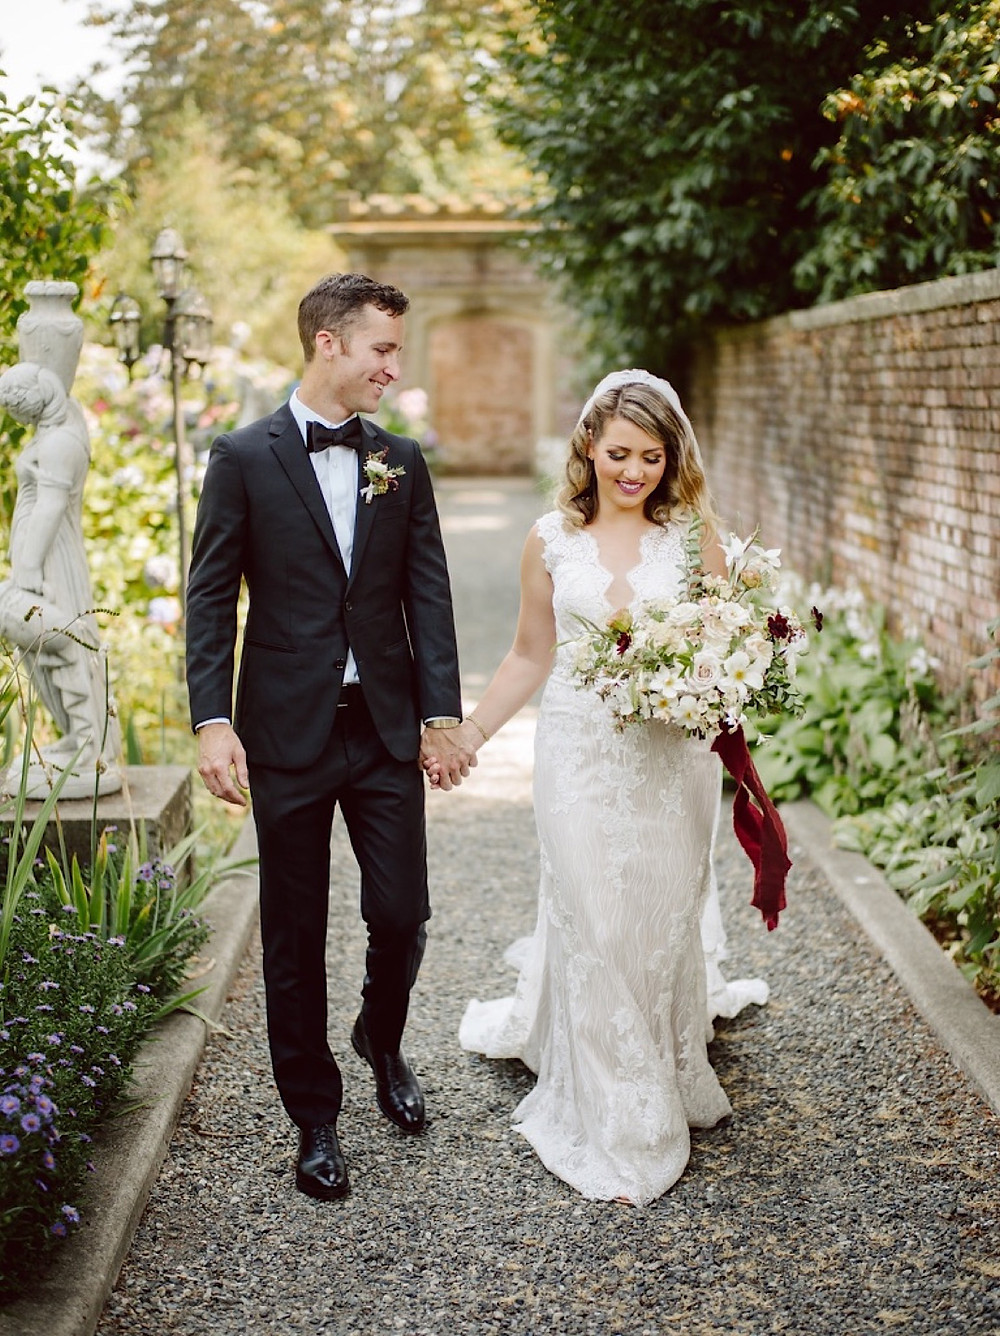 Bride and Groom portrait at a Thornewood Castle Wedding with florals from Botanique